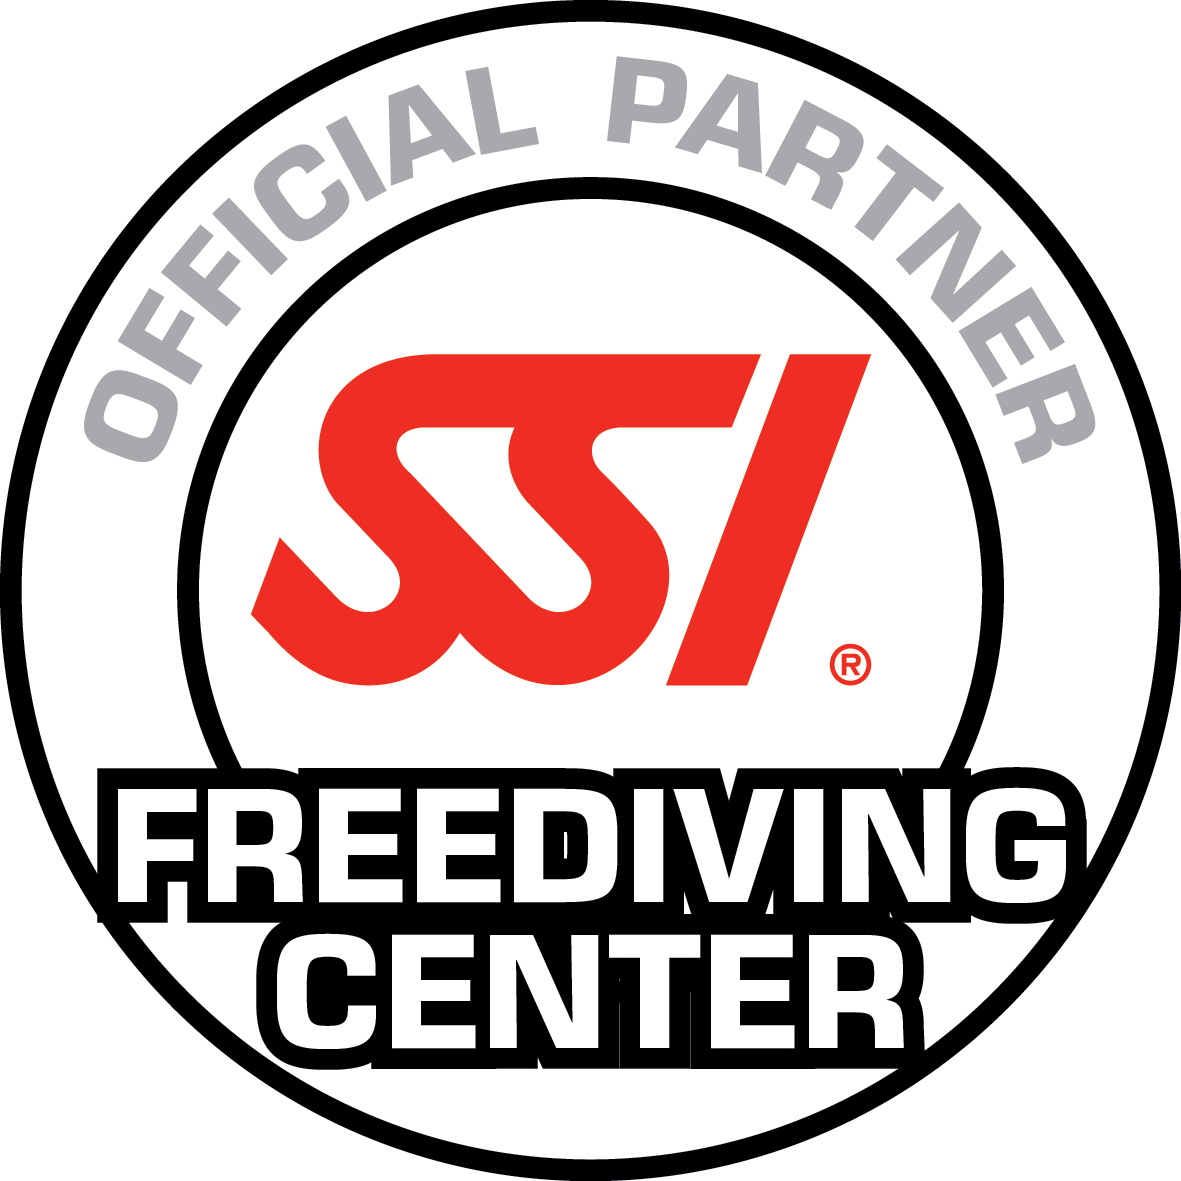 SSI_LOGO_Freediving_Center_RGB.png